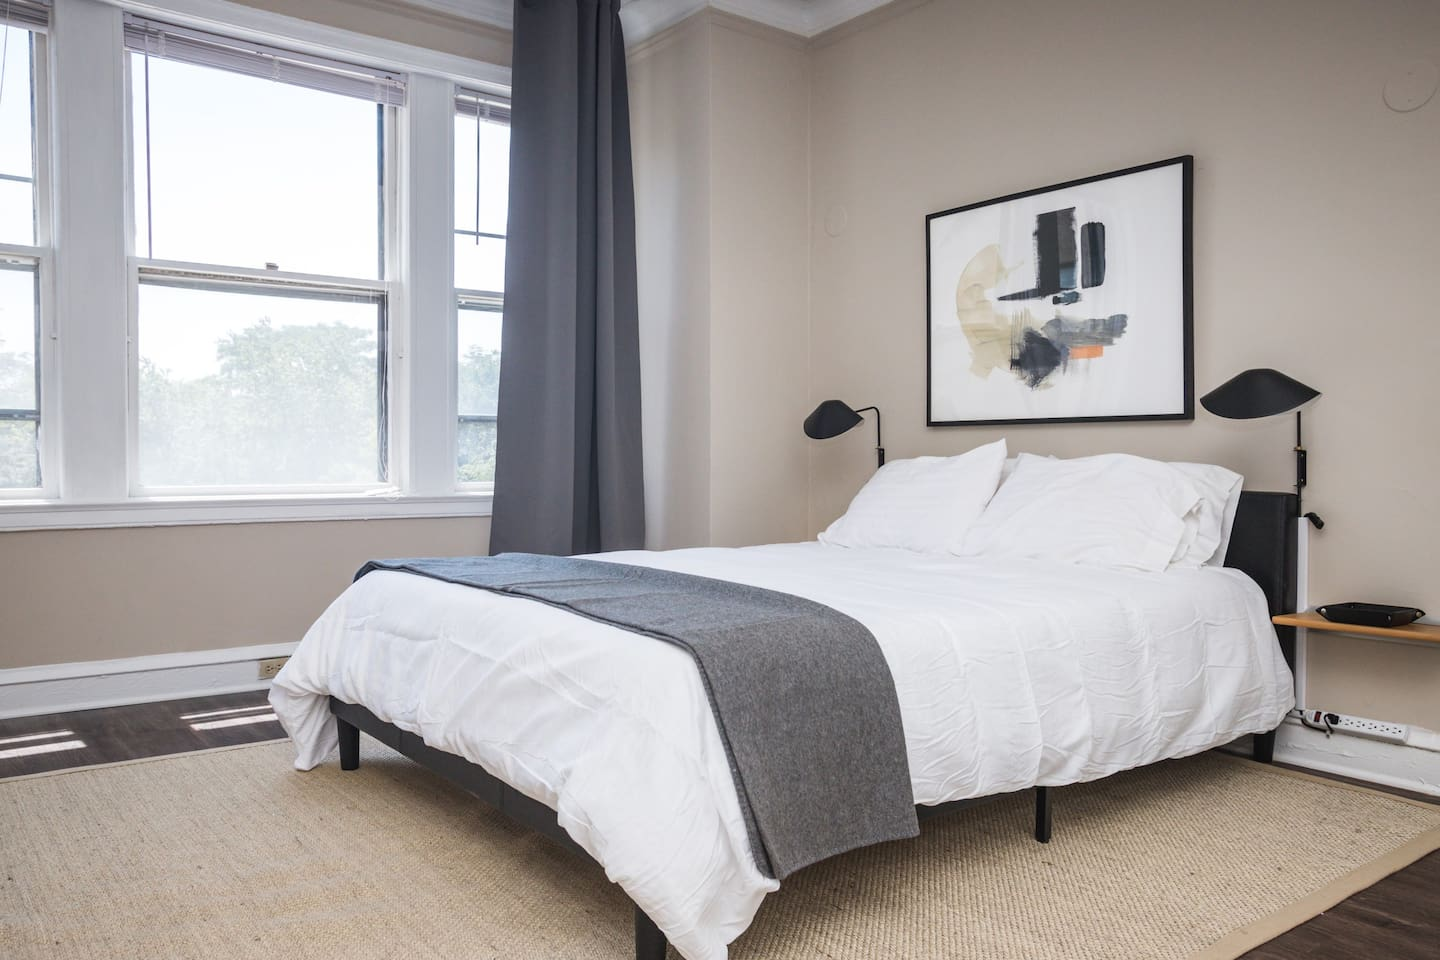 """""""The location is perfect, walking distance to Hyde Park central and the beach. The apartment is very nice and the staff super friendly. Rate this property 10/10!"""""""